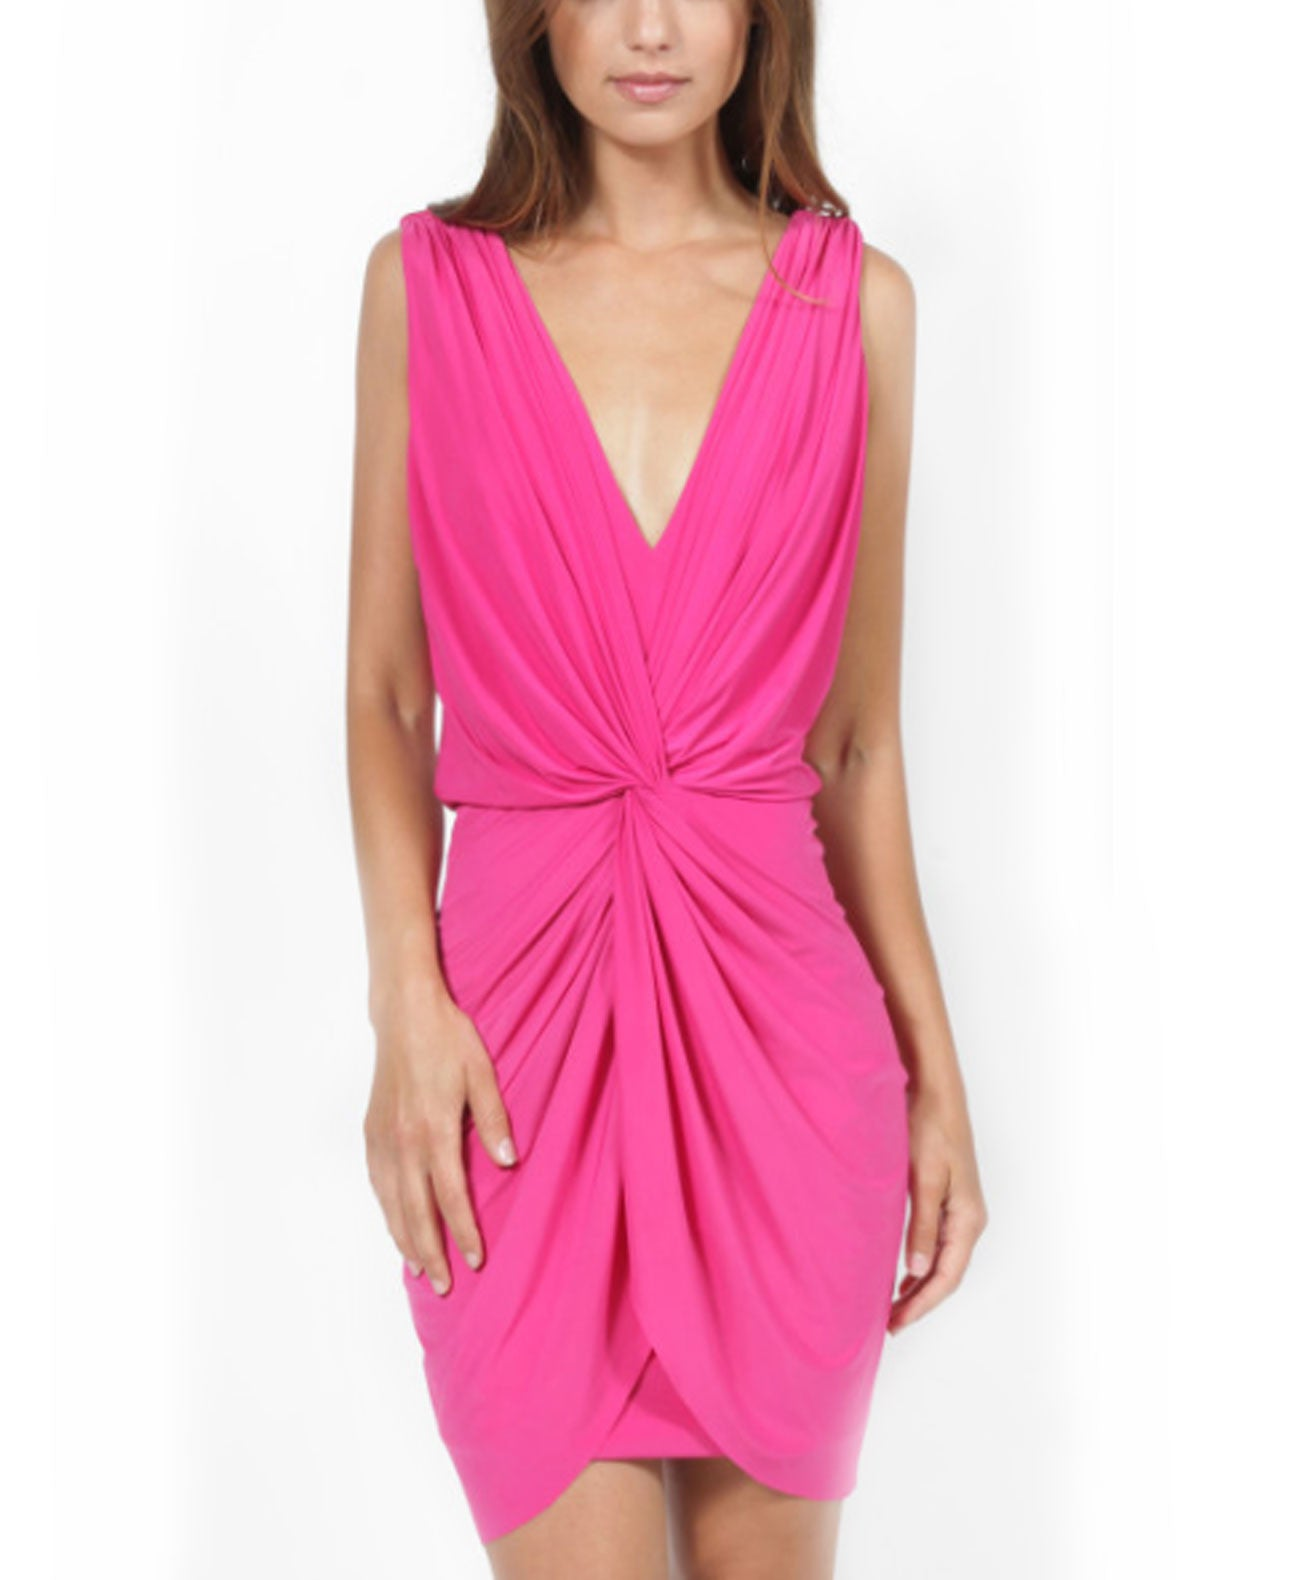 Leza Dress hot pink - Koko & Palenki - 1